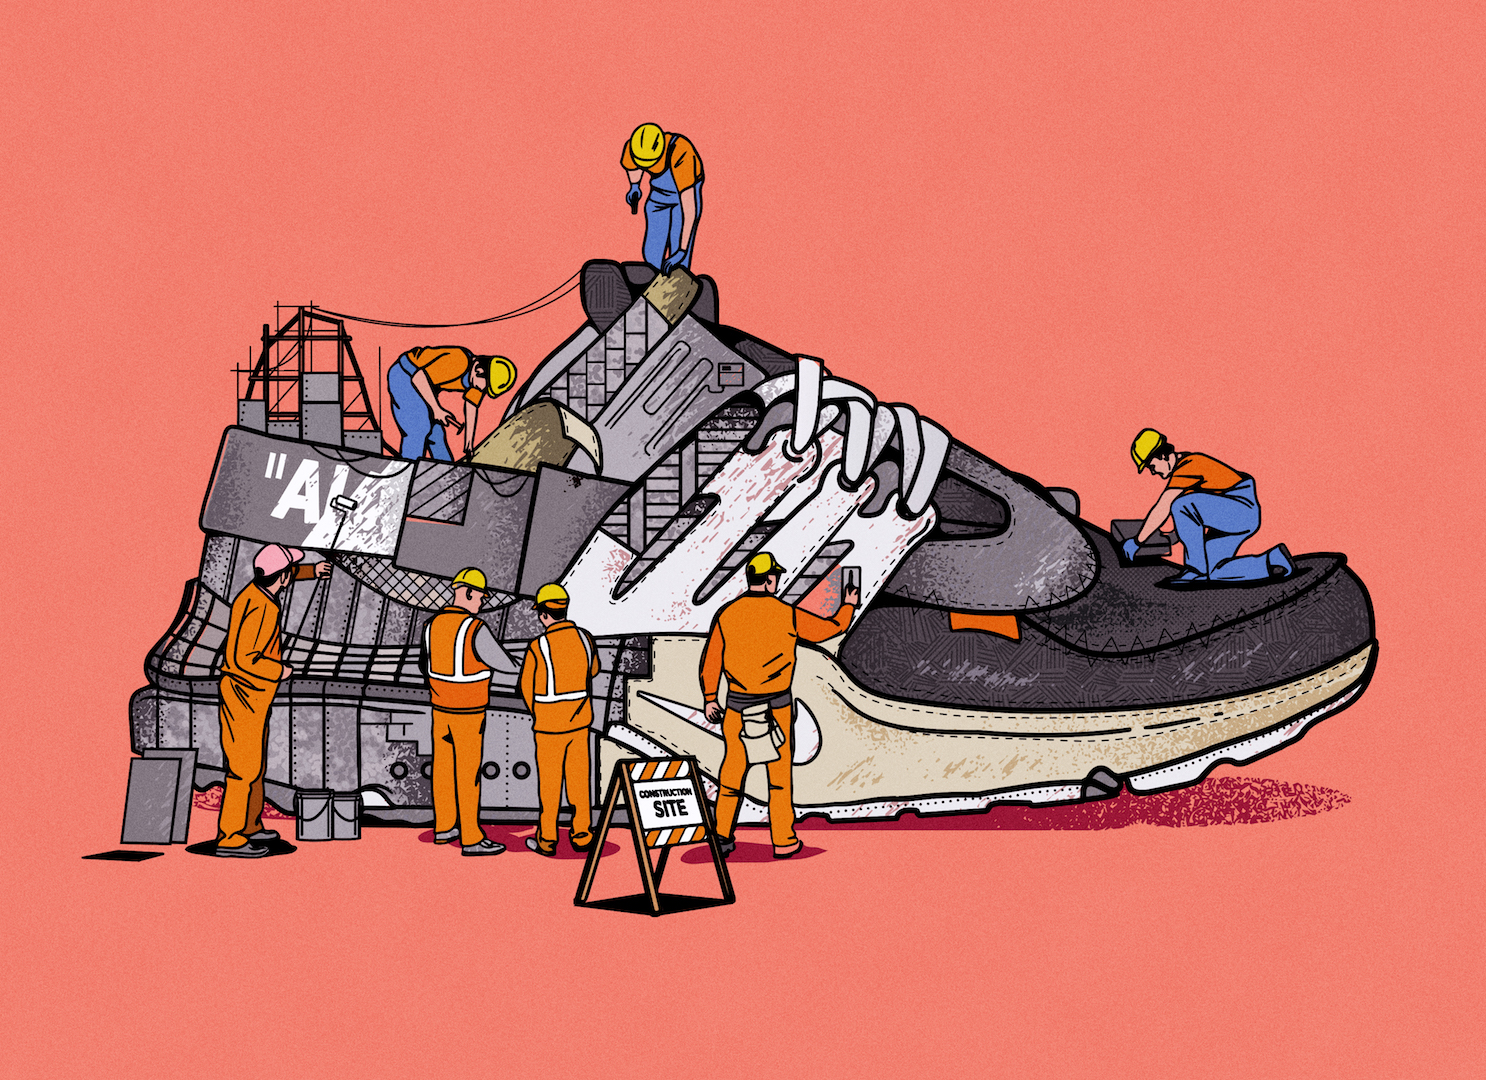 Le sneakers in costruzione illustrate da Musketon | Collater.al 1